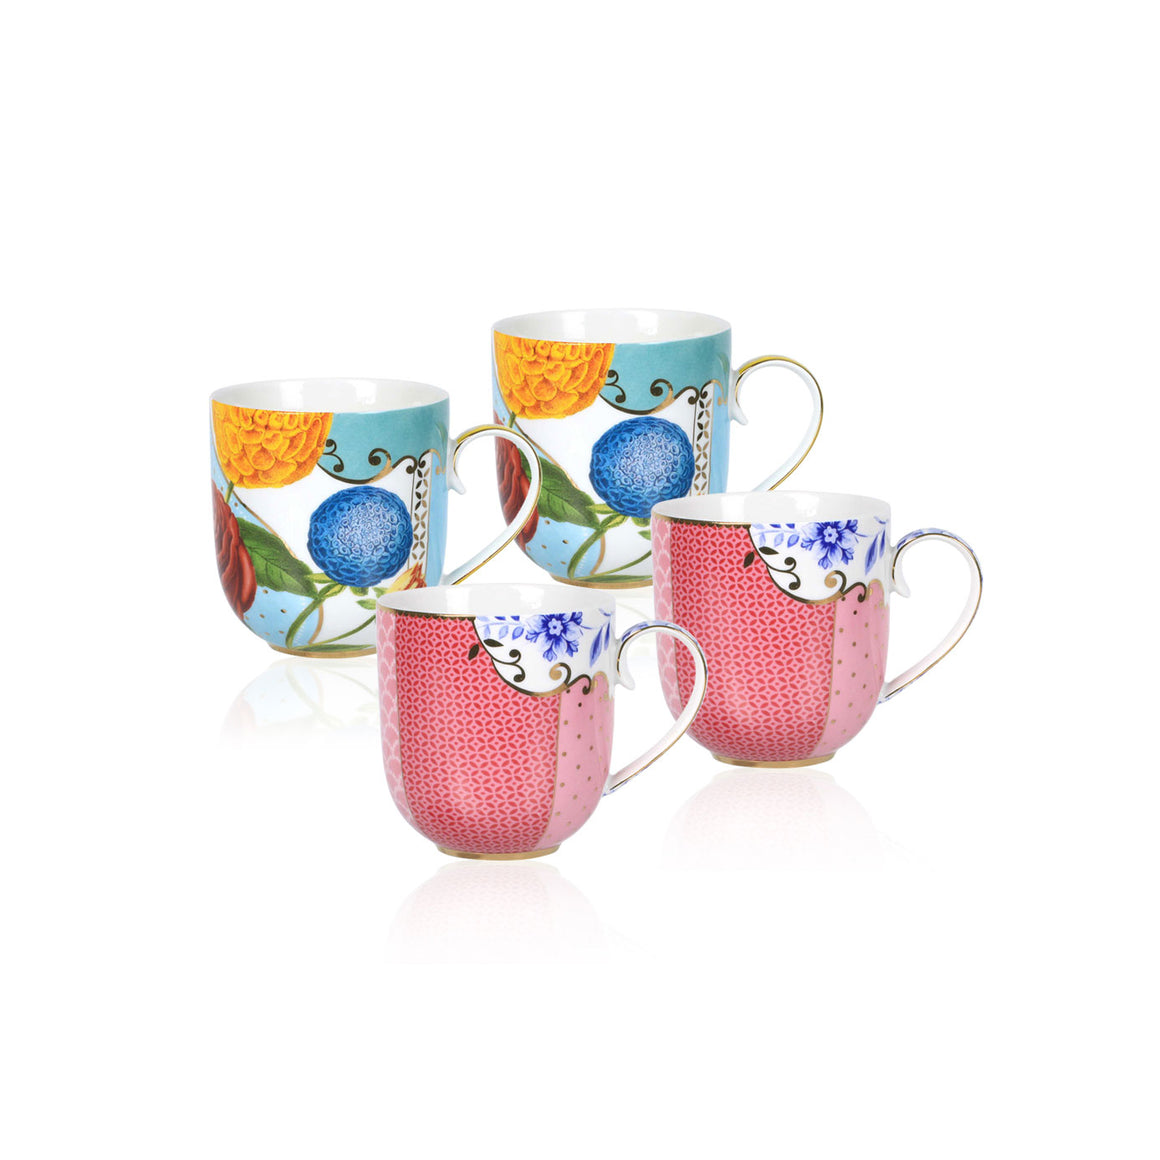 PIP STUDIO ROYAL 4'LÜ MUG SET